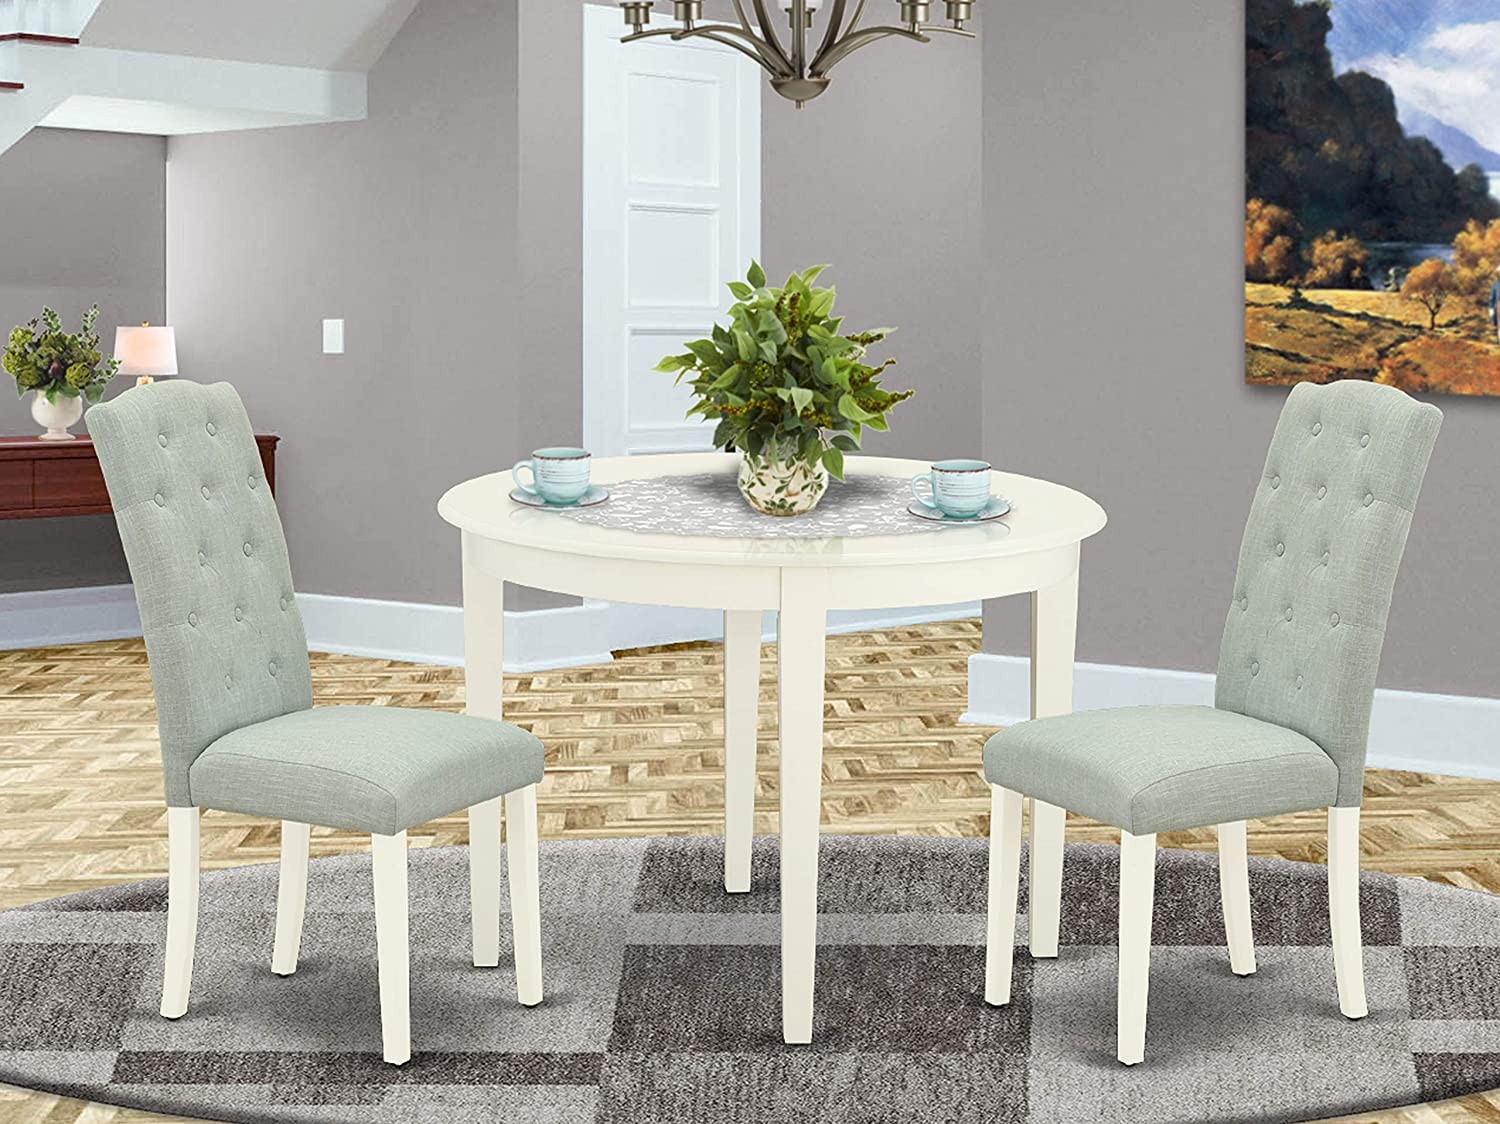 Amazon Com East West Furniture Round Dining Table Set 3 Pieces Baby Blue Linen Fabric Button Tufted Dining Chairs White Finish 4 Legs Solid Wood Round Dining Table And Structure Furniture Decor